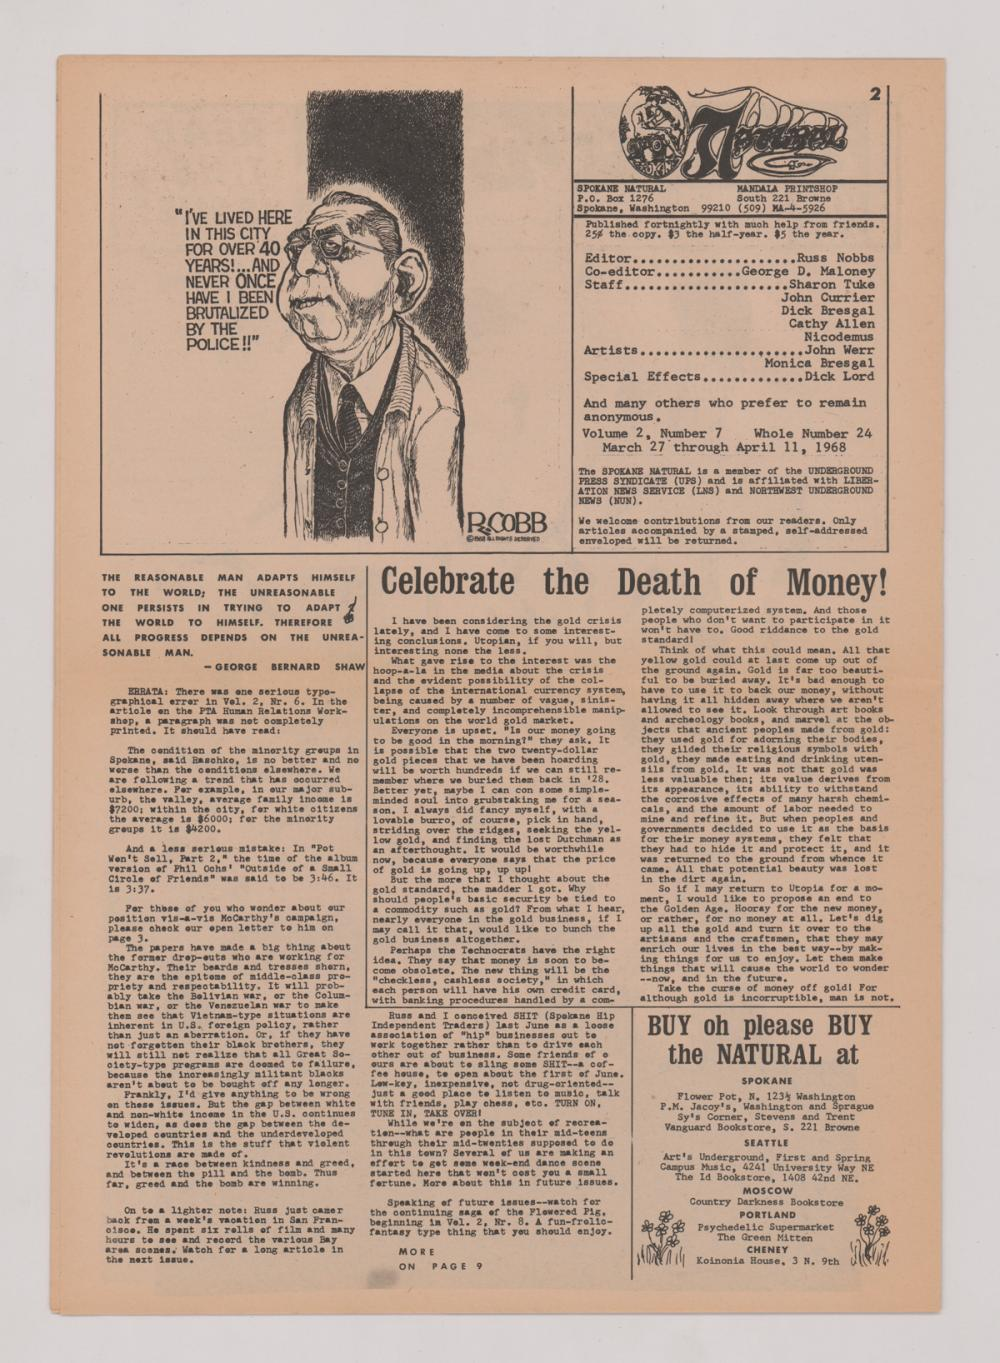 Lot 625B: Rock and Head Shop Posters and Newspaper